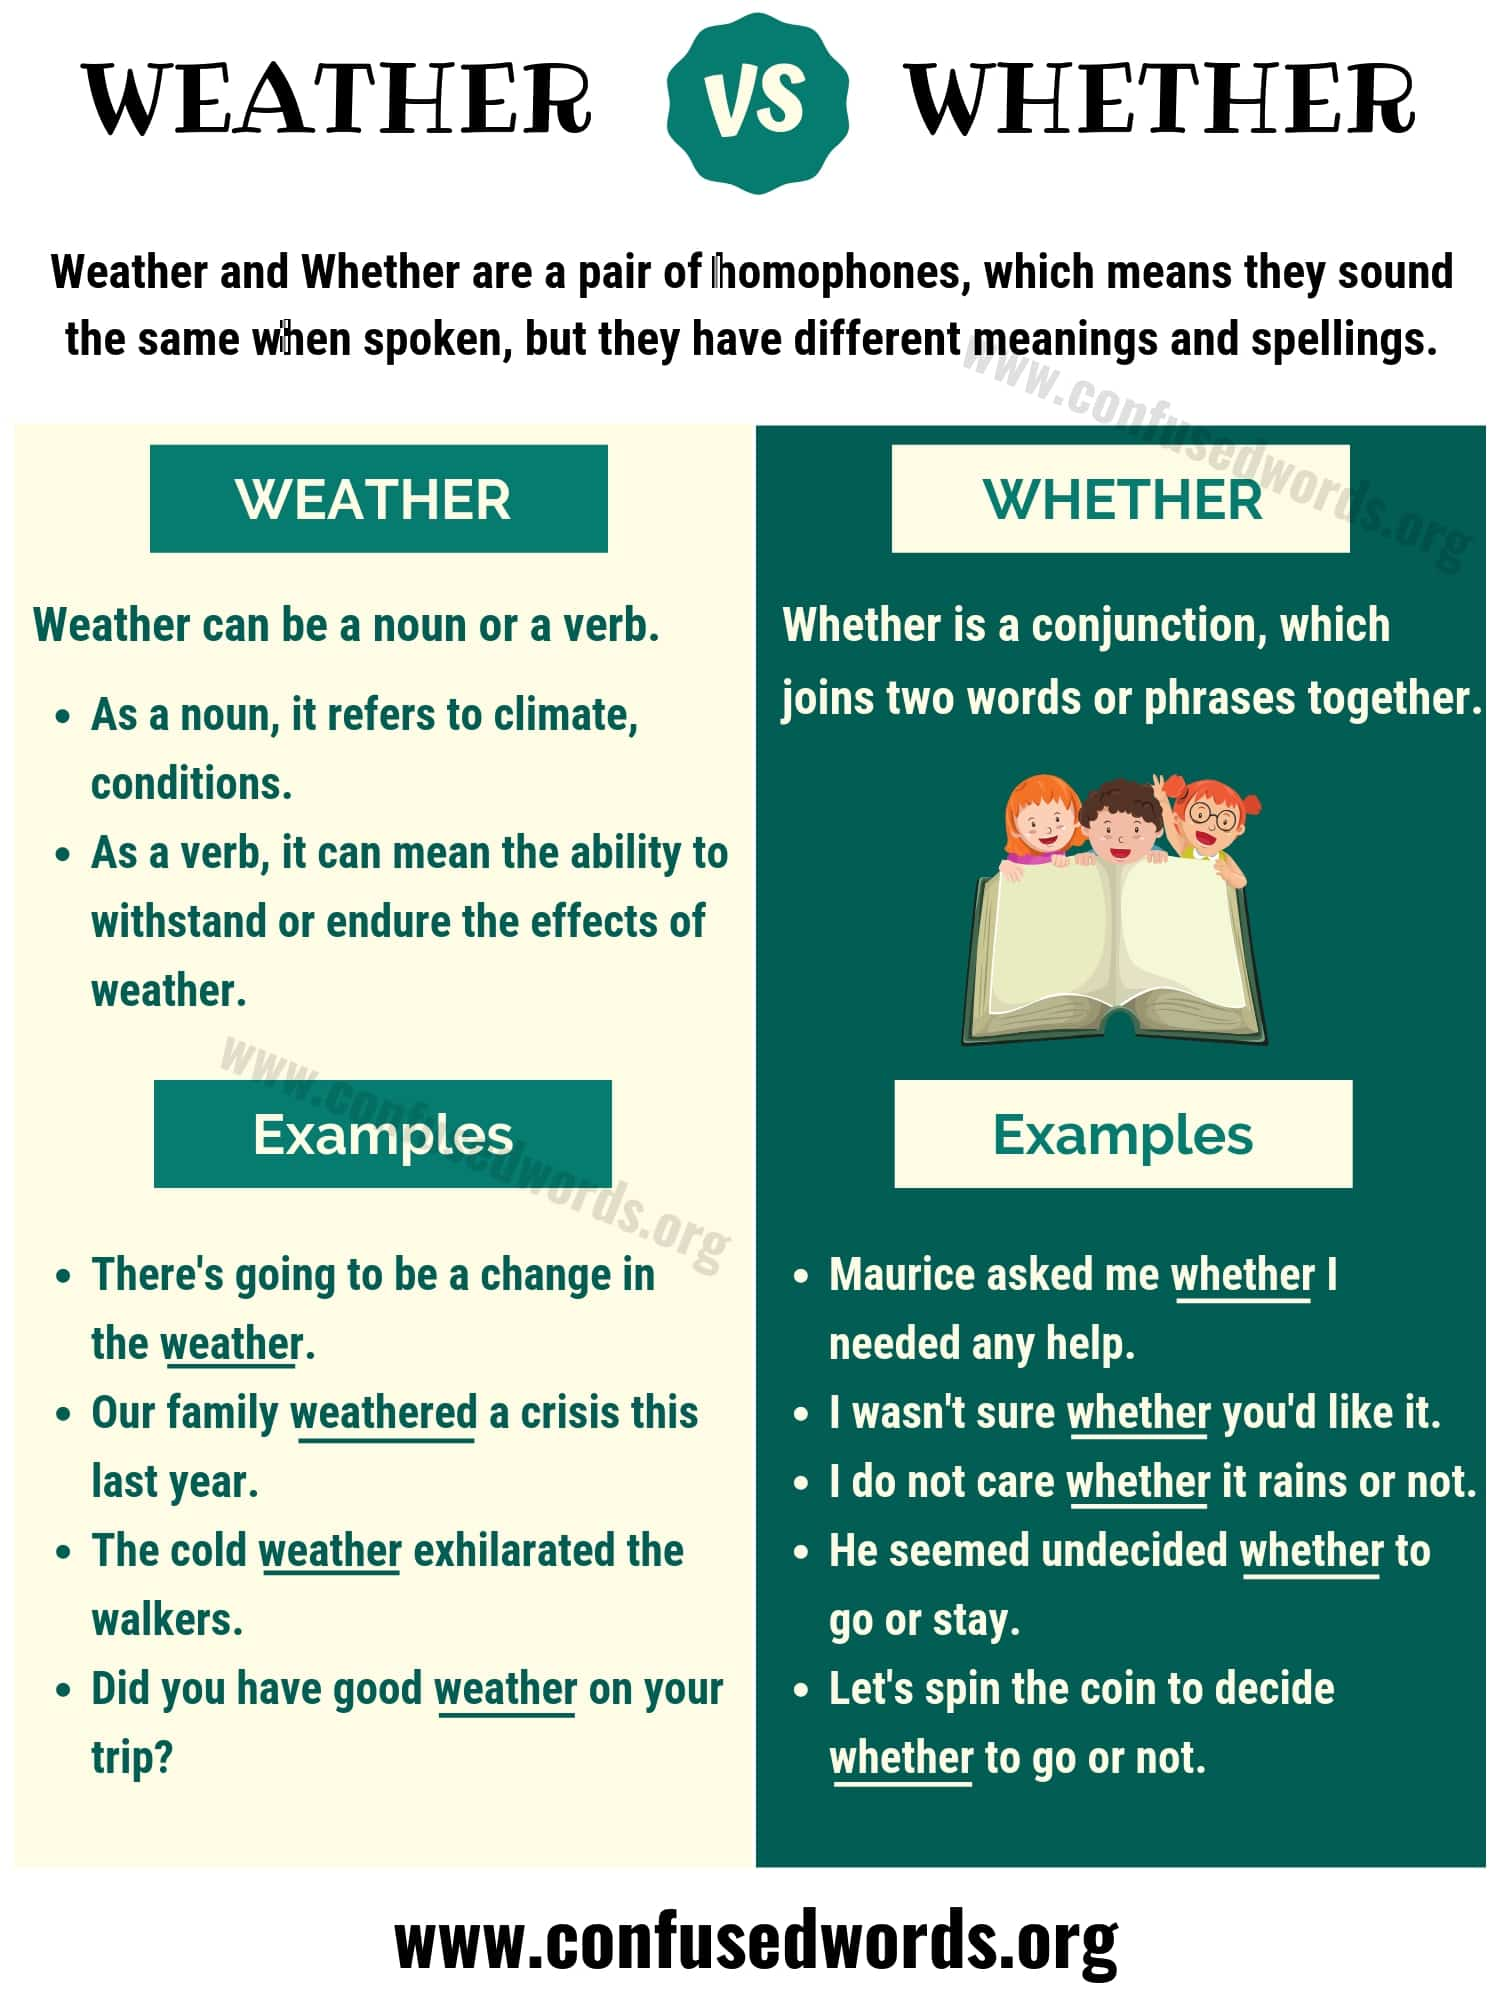 Weather vs Whether